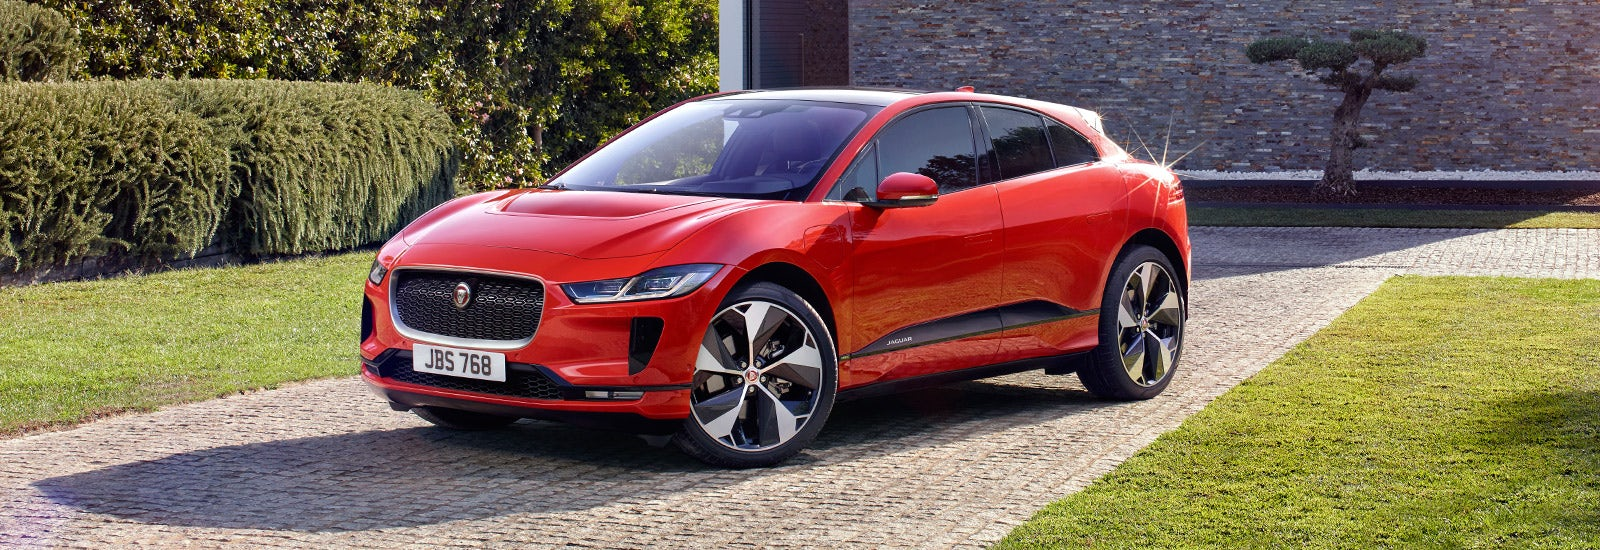 jaguar j pace suv price specs and release date carwow. Black Bedroom Furniture Sets. Home Design Ideas